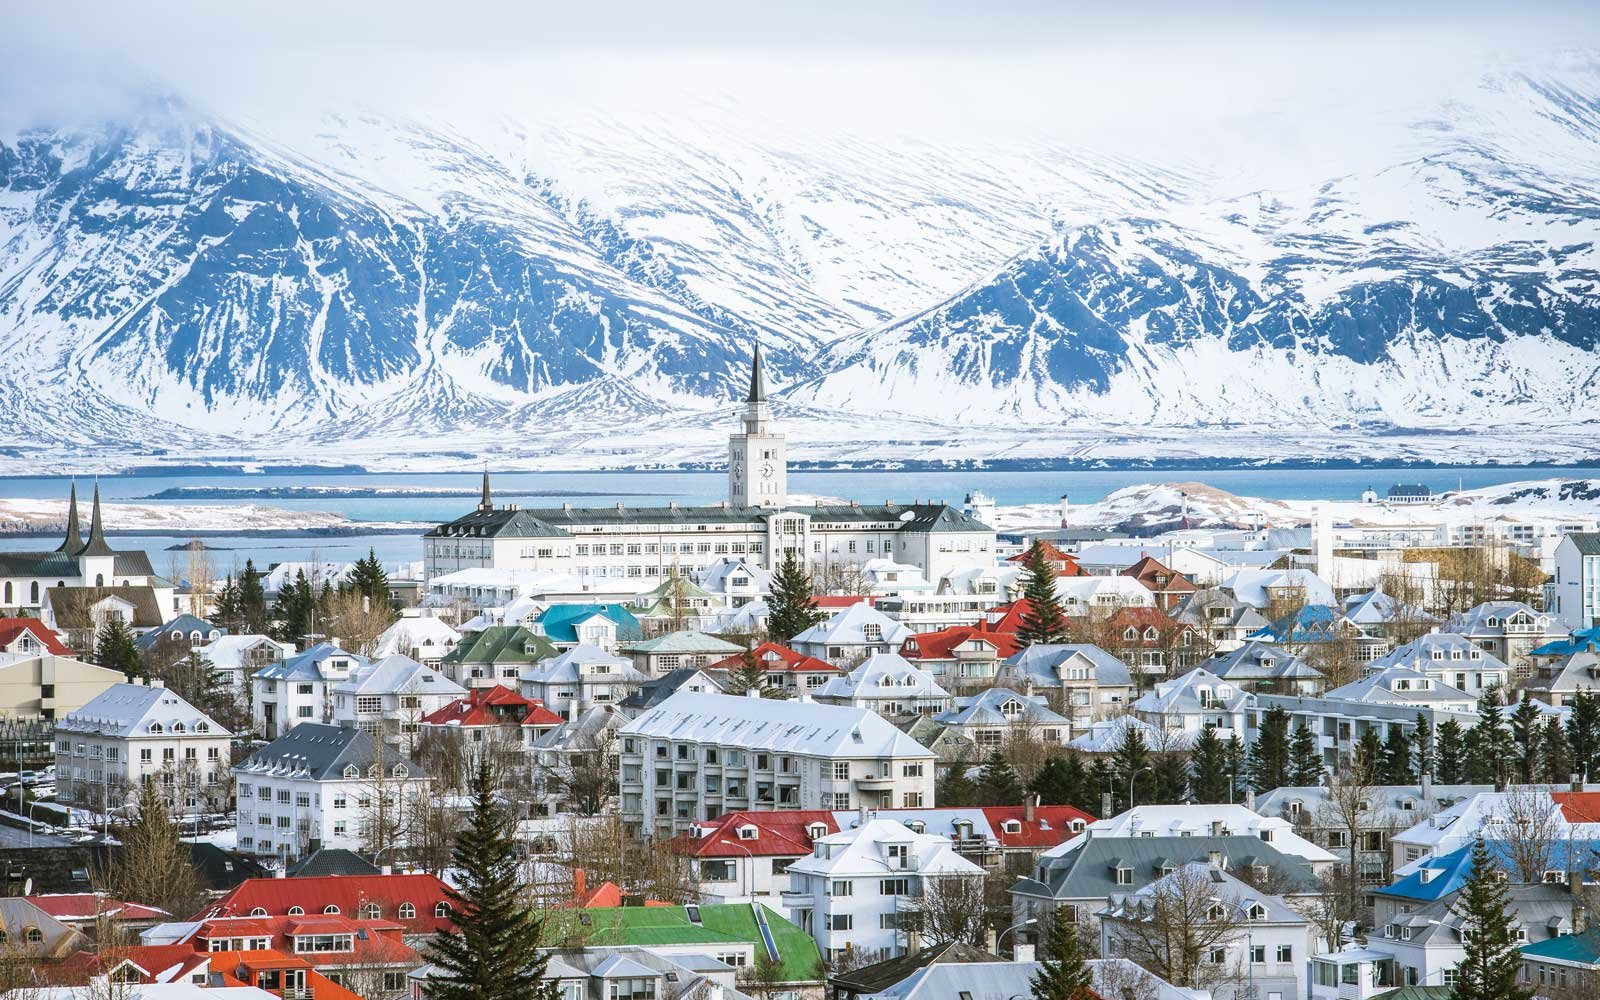 Reykjavik, the capital city of iceland, in winter view from above